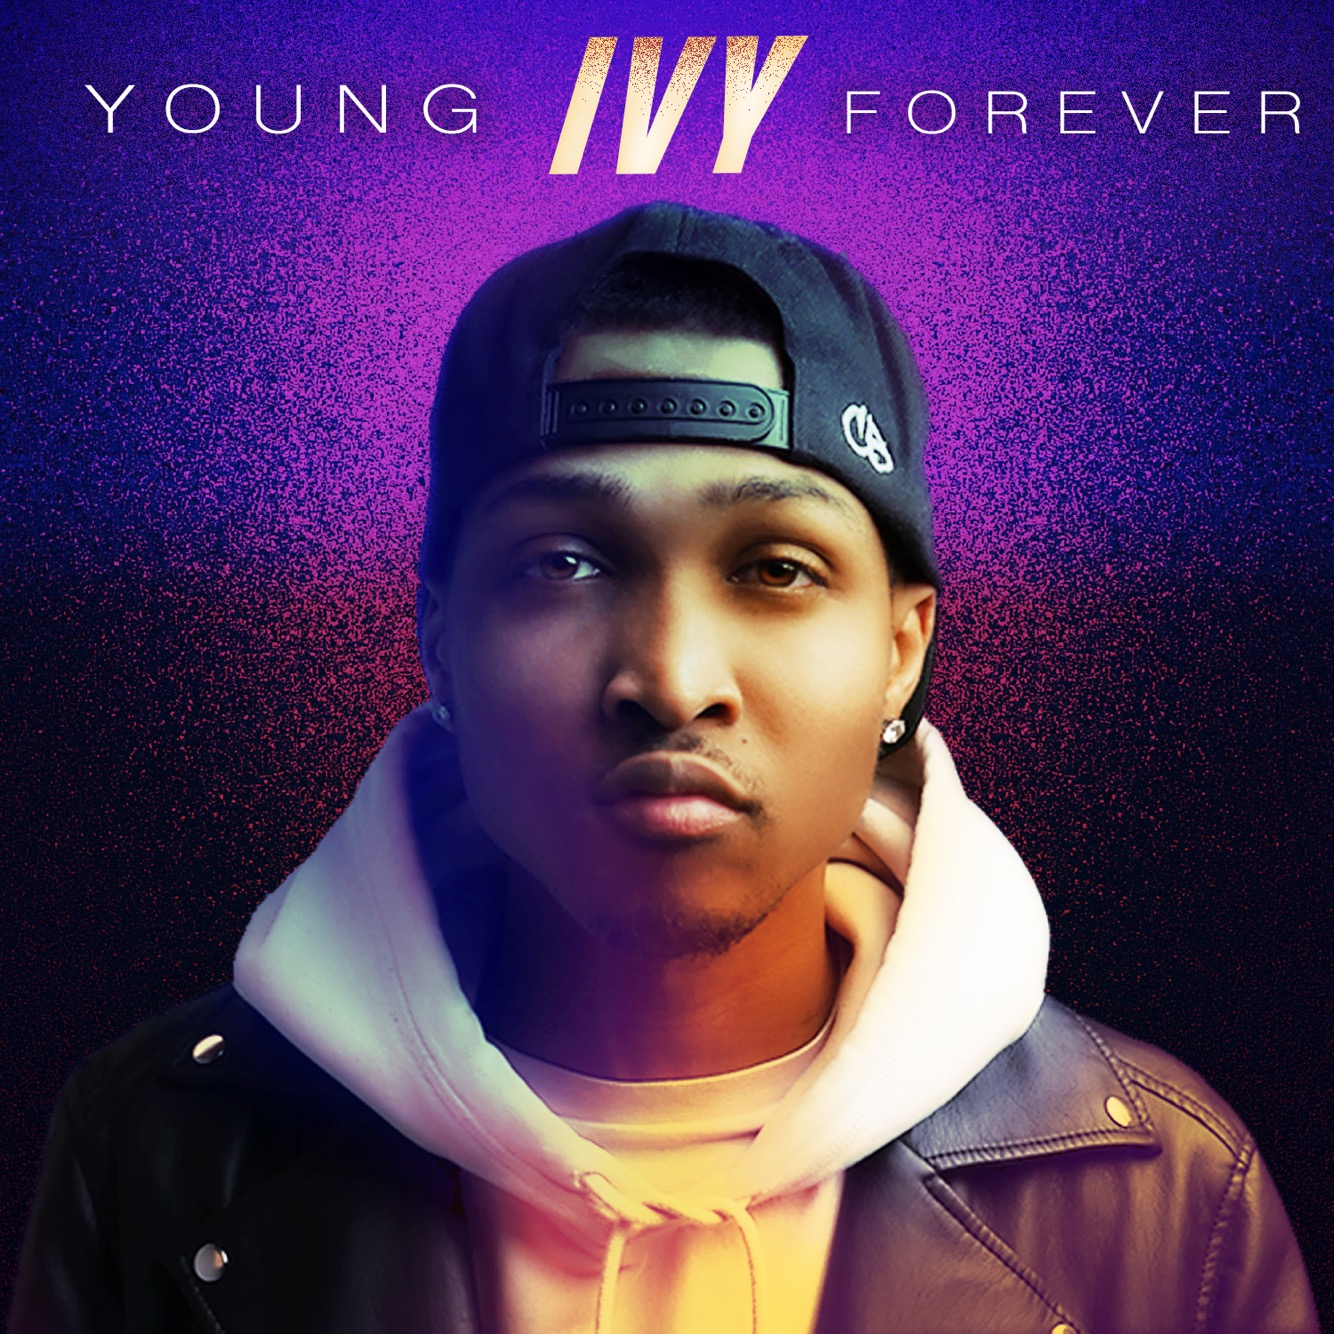 YOUNG FOREVER ALBUM COVER